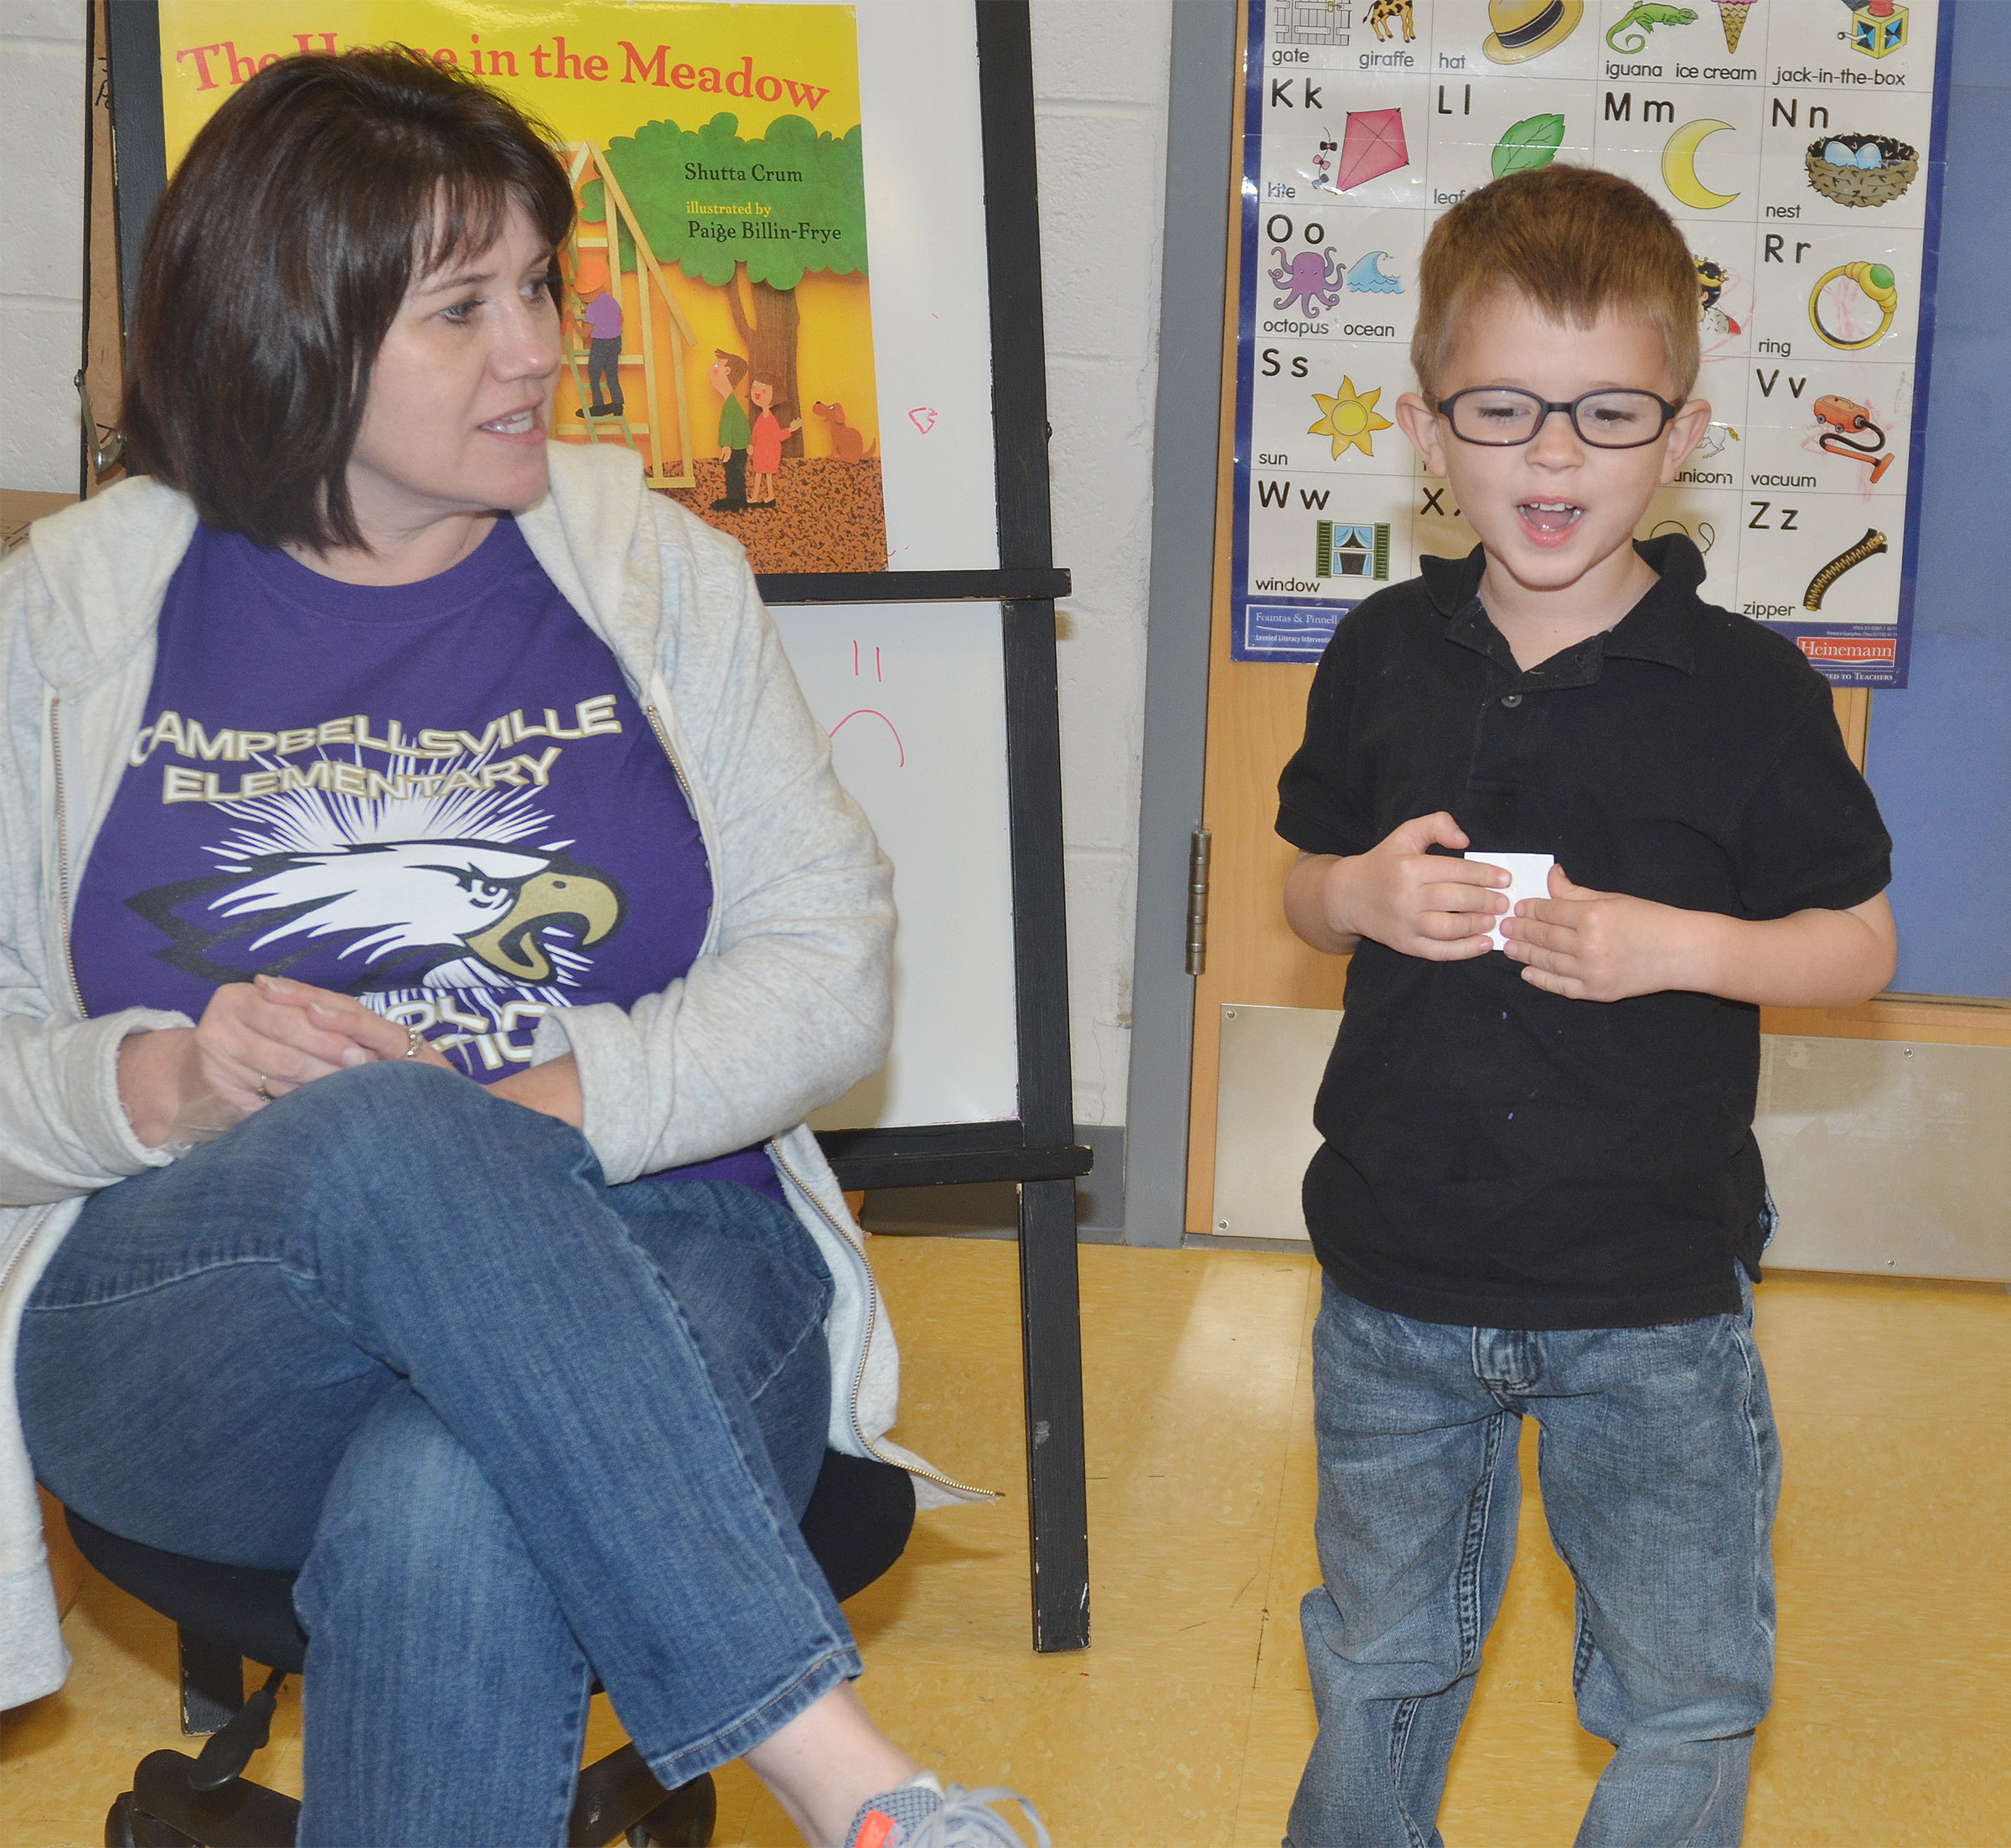 CES preschool teacher Denise Spencer asks Andrew Stout to give his classmates clues about a word that starts with the letter V.